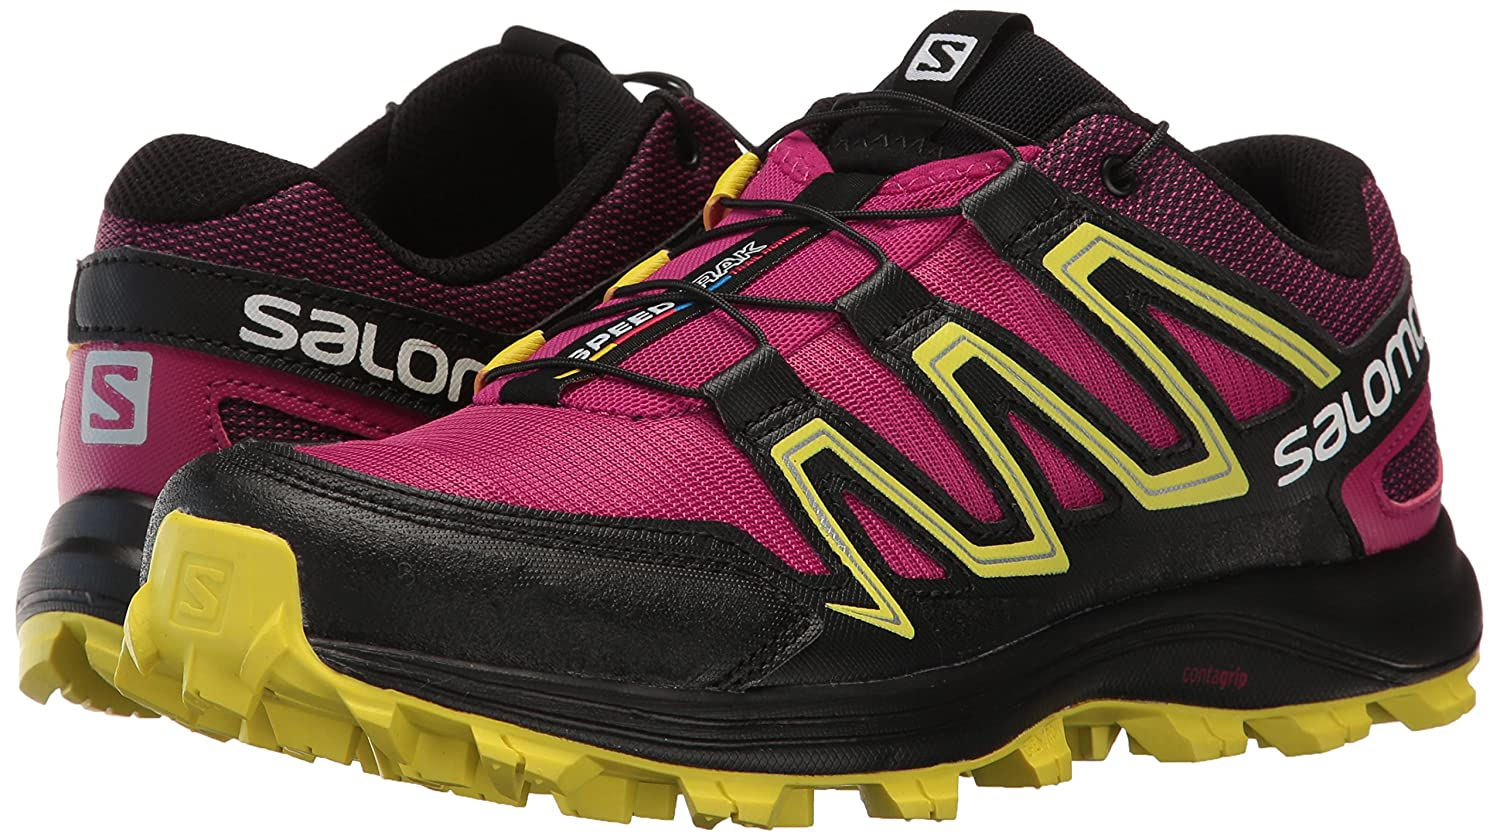 Salomon Women's Speedtrak 10 W-W Trail Runner B01HD2P5MK 10 Speedtrak B(M) US|Sangria/Sulphur Spring/Black 68d485